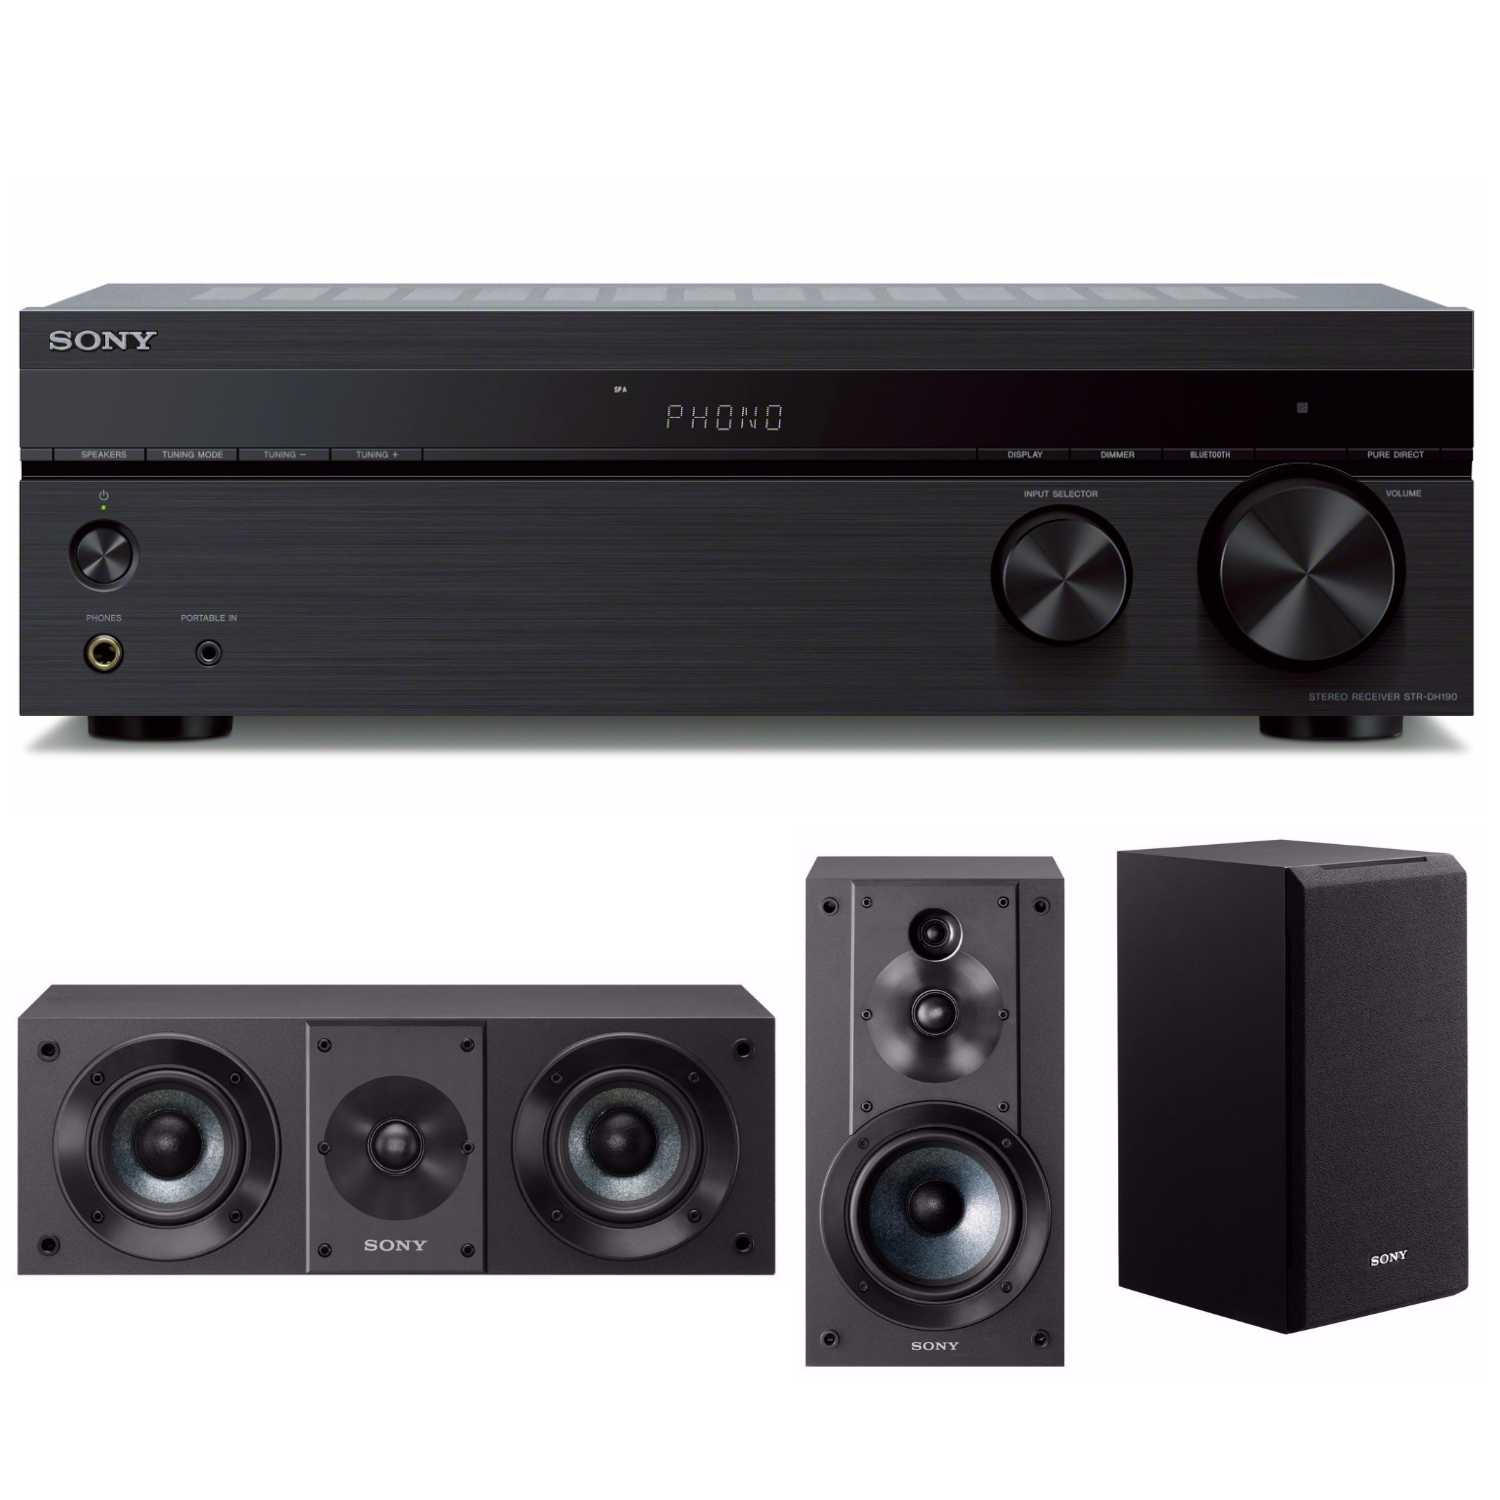 Sony STRDH190 2-ch Stereo Receiver (Phono Bluetooth) with Two Speaker Systems by Sony